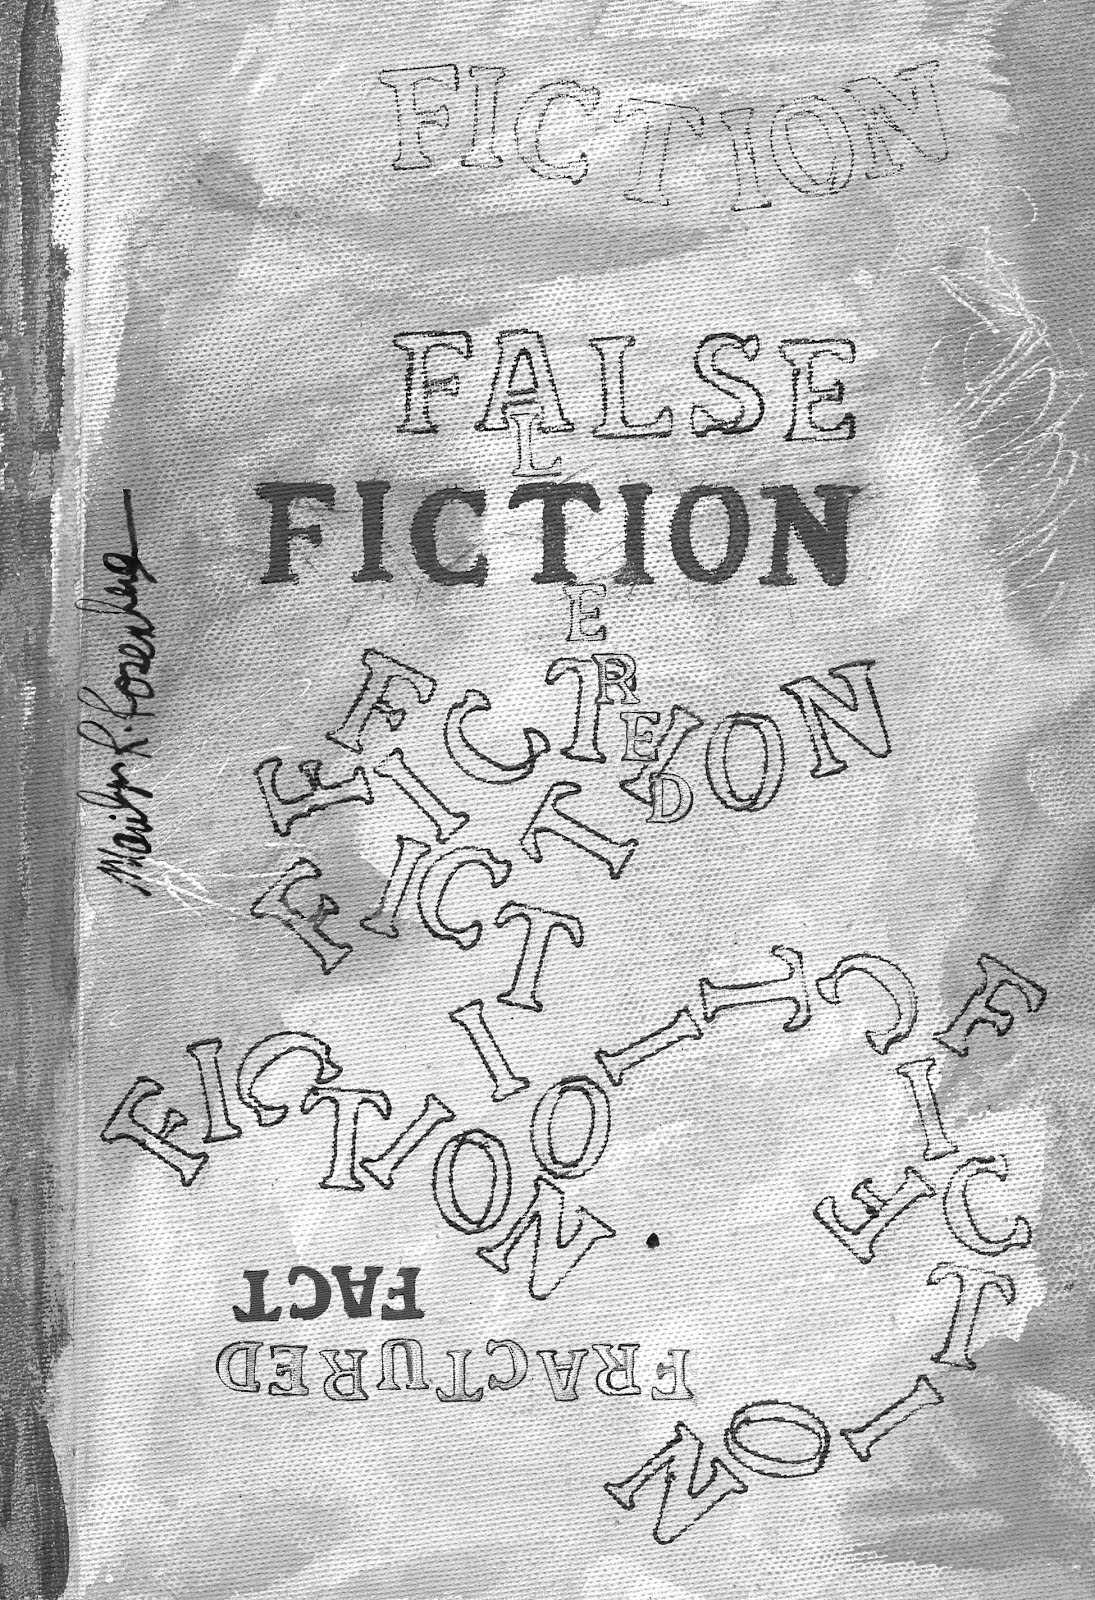 Coming Soon in Winter of 2018!  FALSE FICTION FRACTURED FACT ALTERED by Marilyn R. Rosenberg